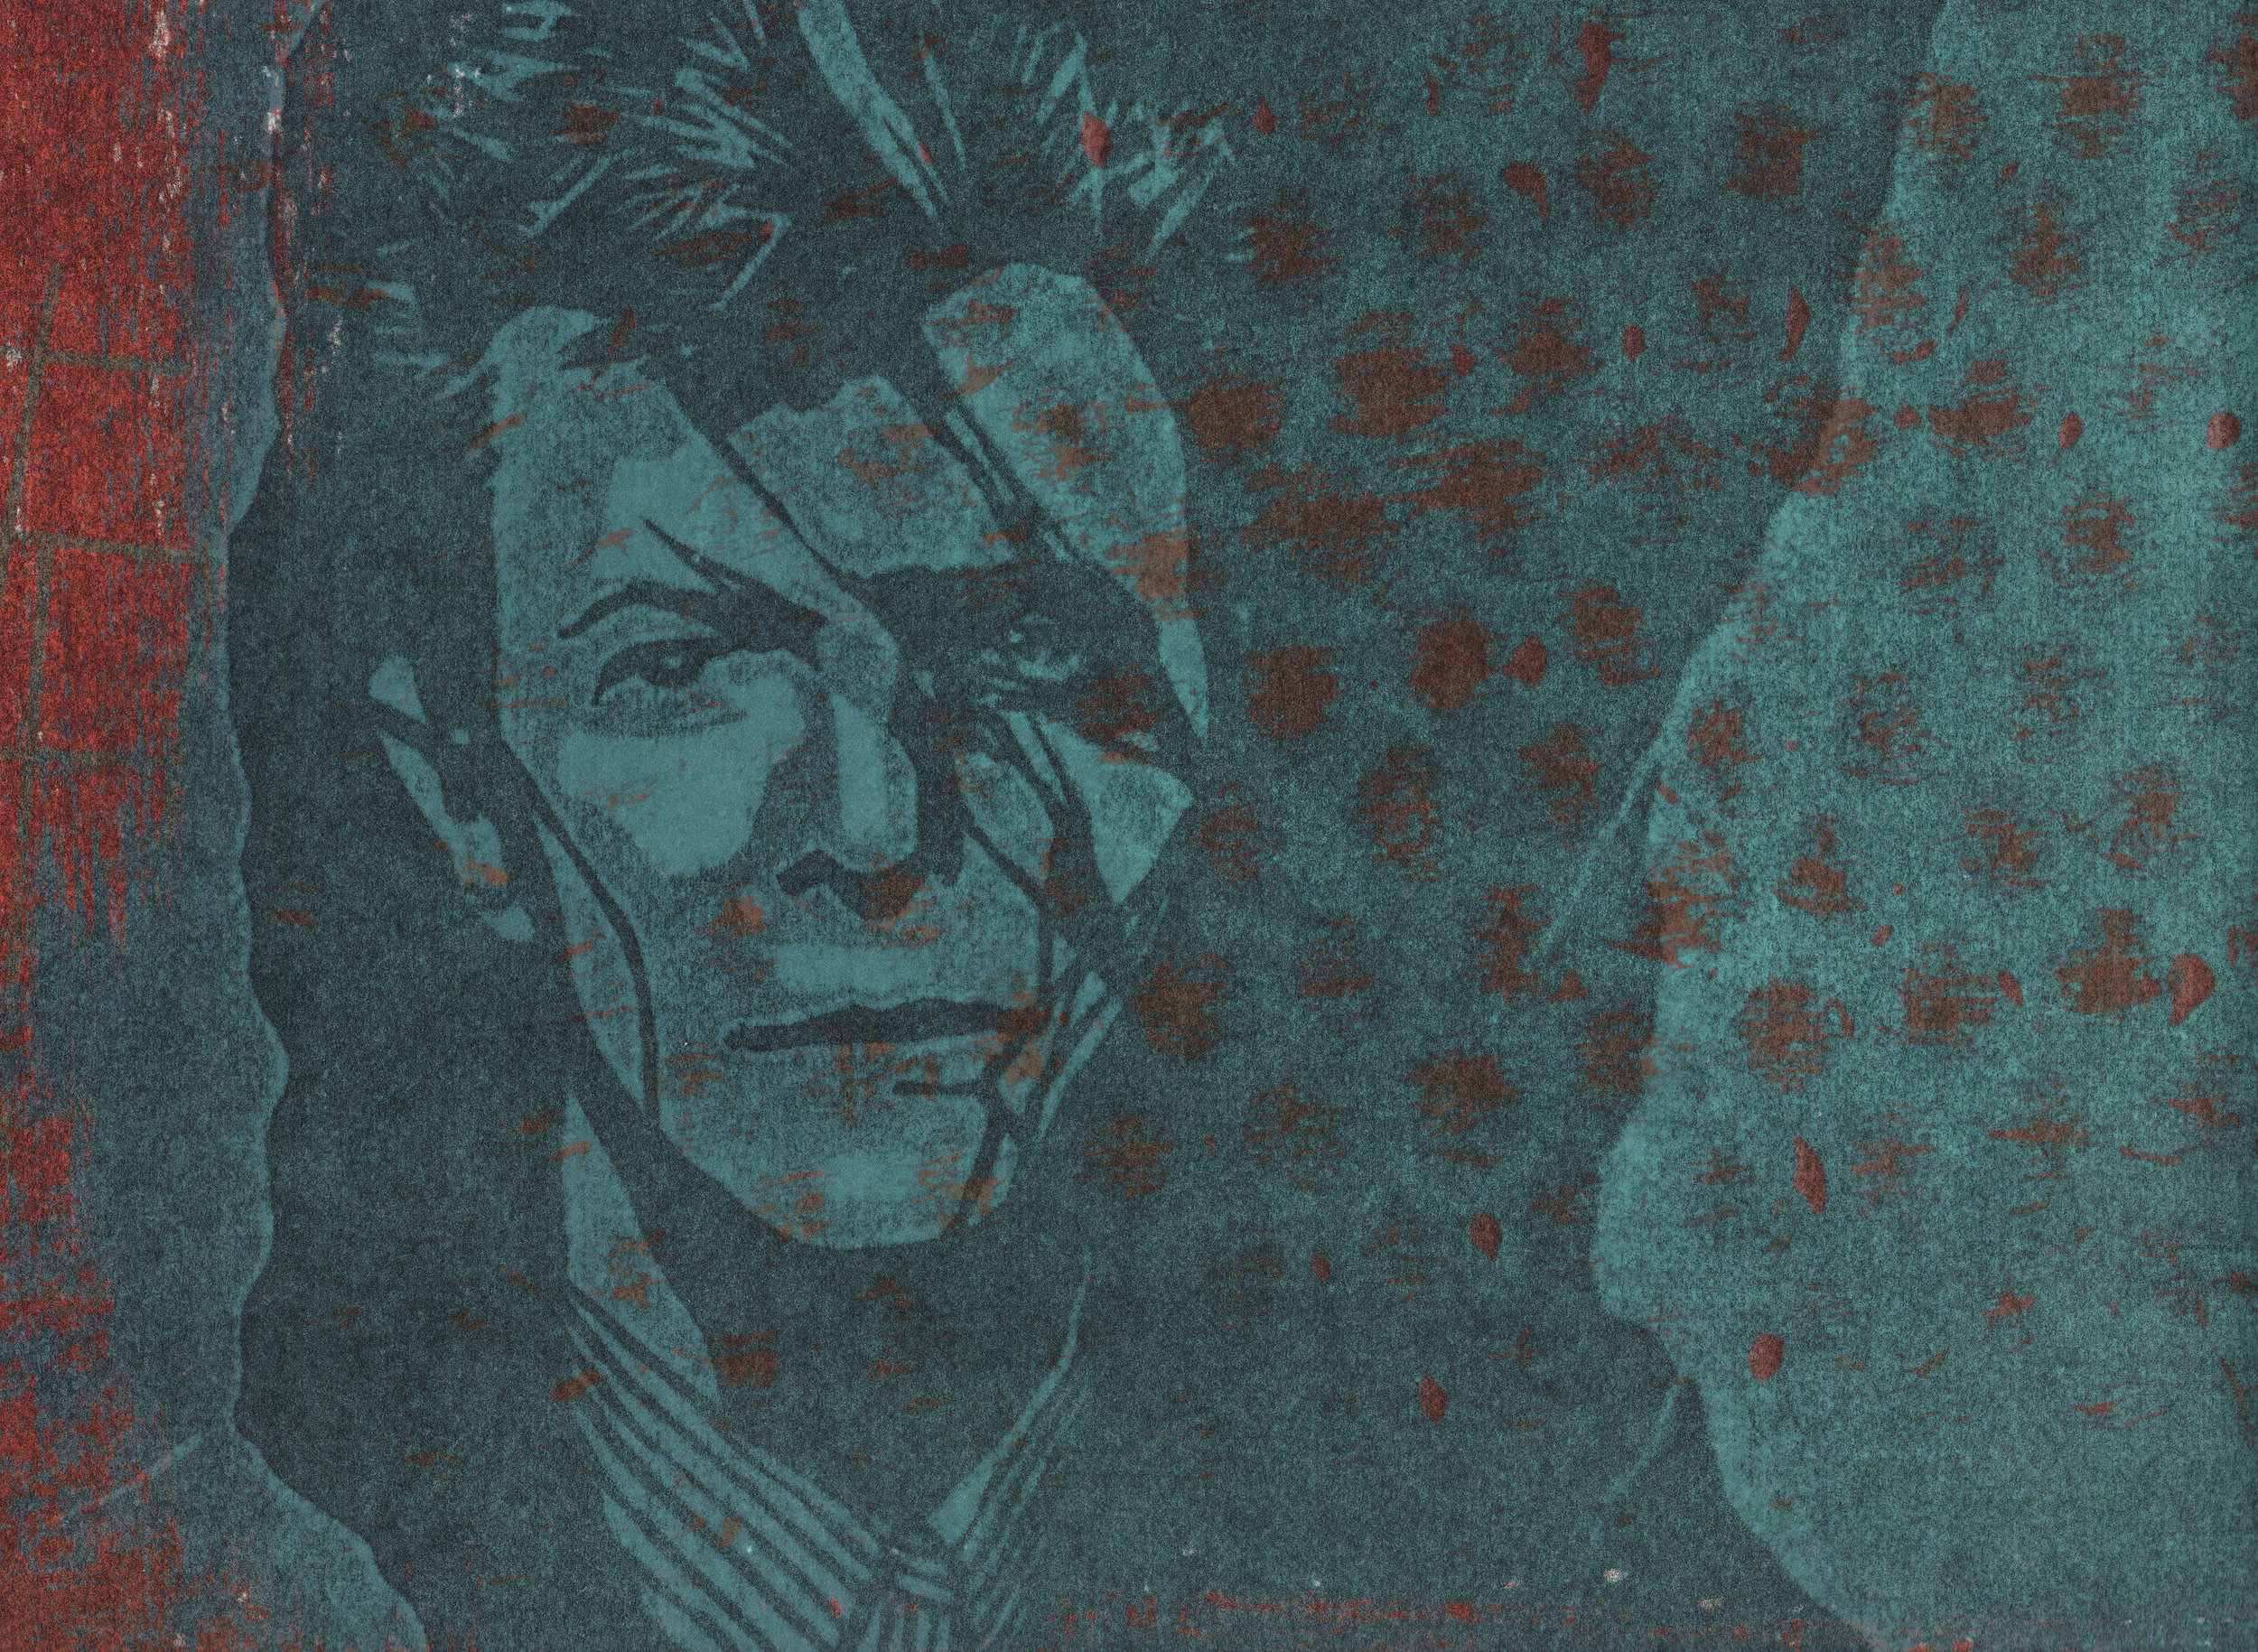 The Ghost of David Bowie